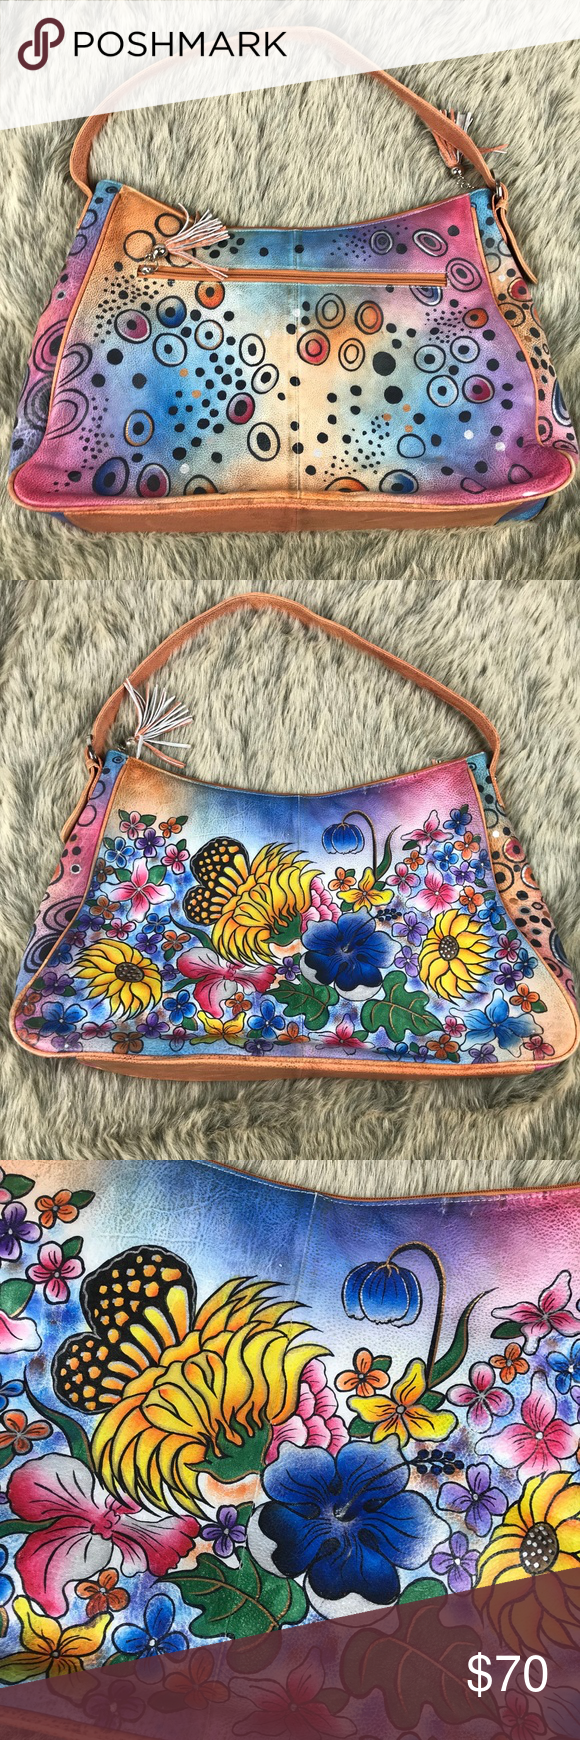 7794d6a211f Biacci Hand Painted Purse Bag Festival Hippy Art Biacci Hand Painted Purse  Bag Festival Hippy Wearable